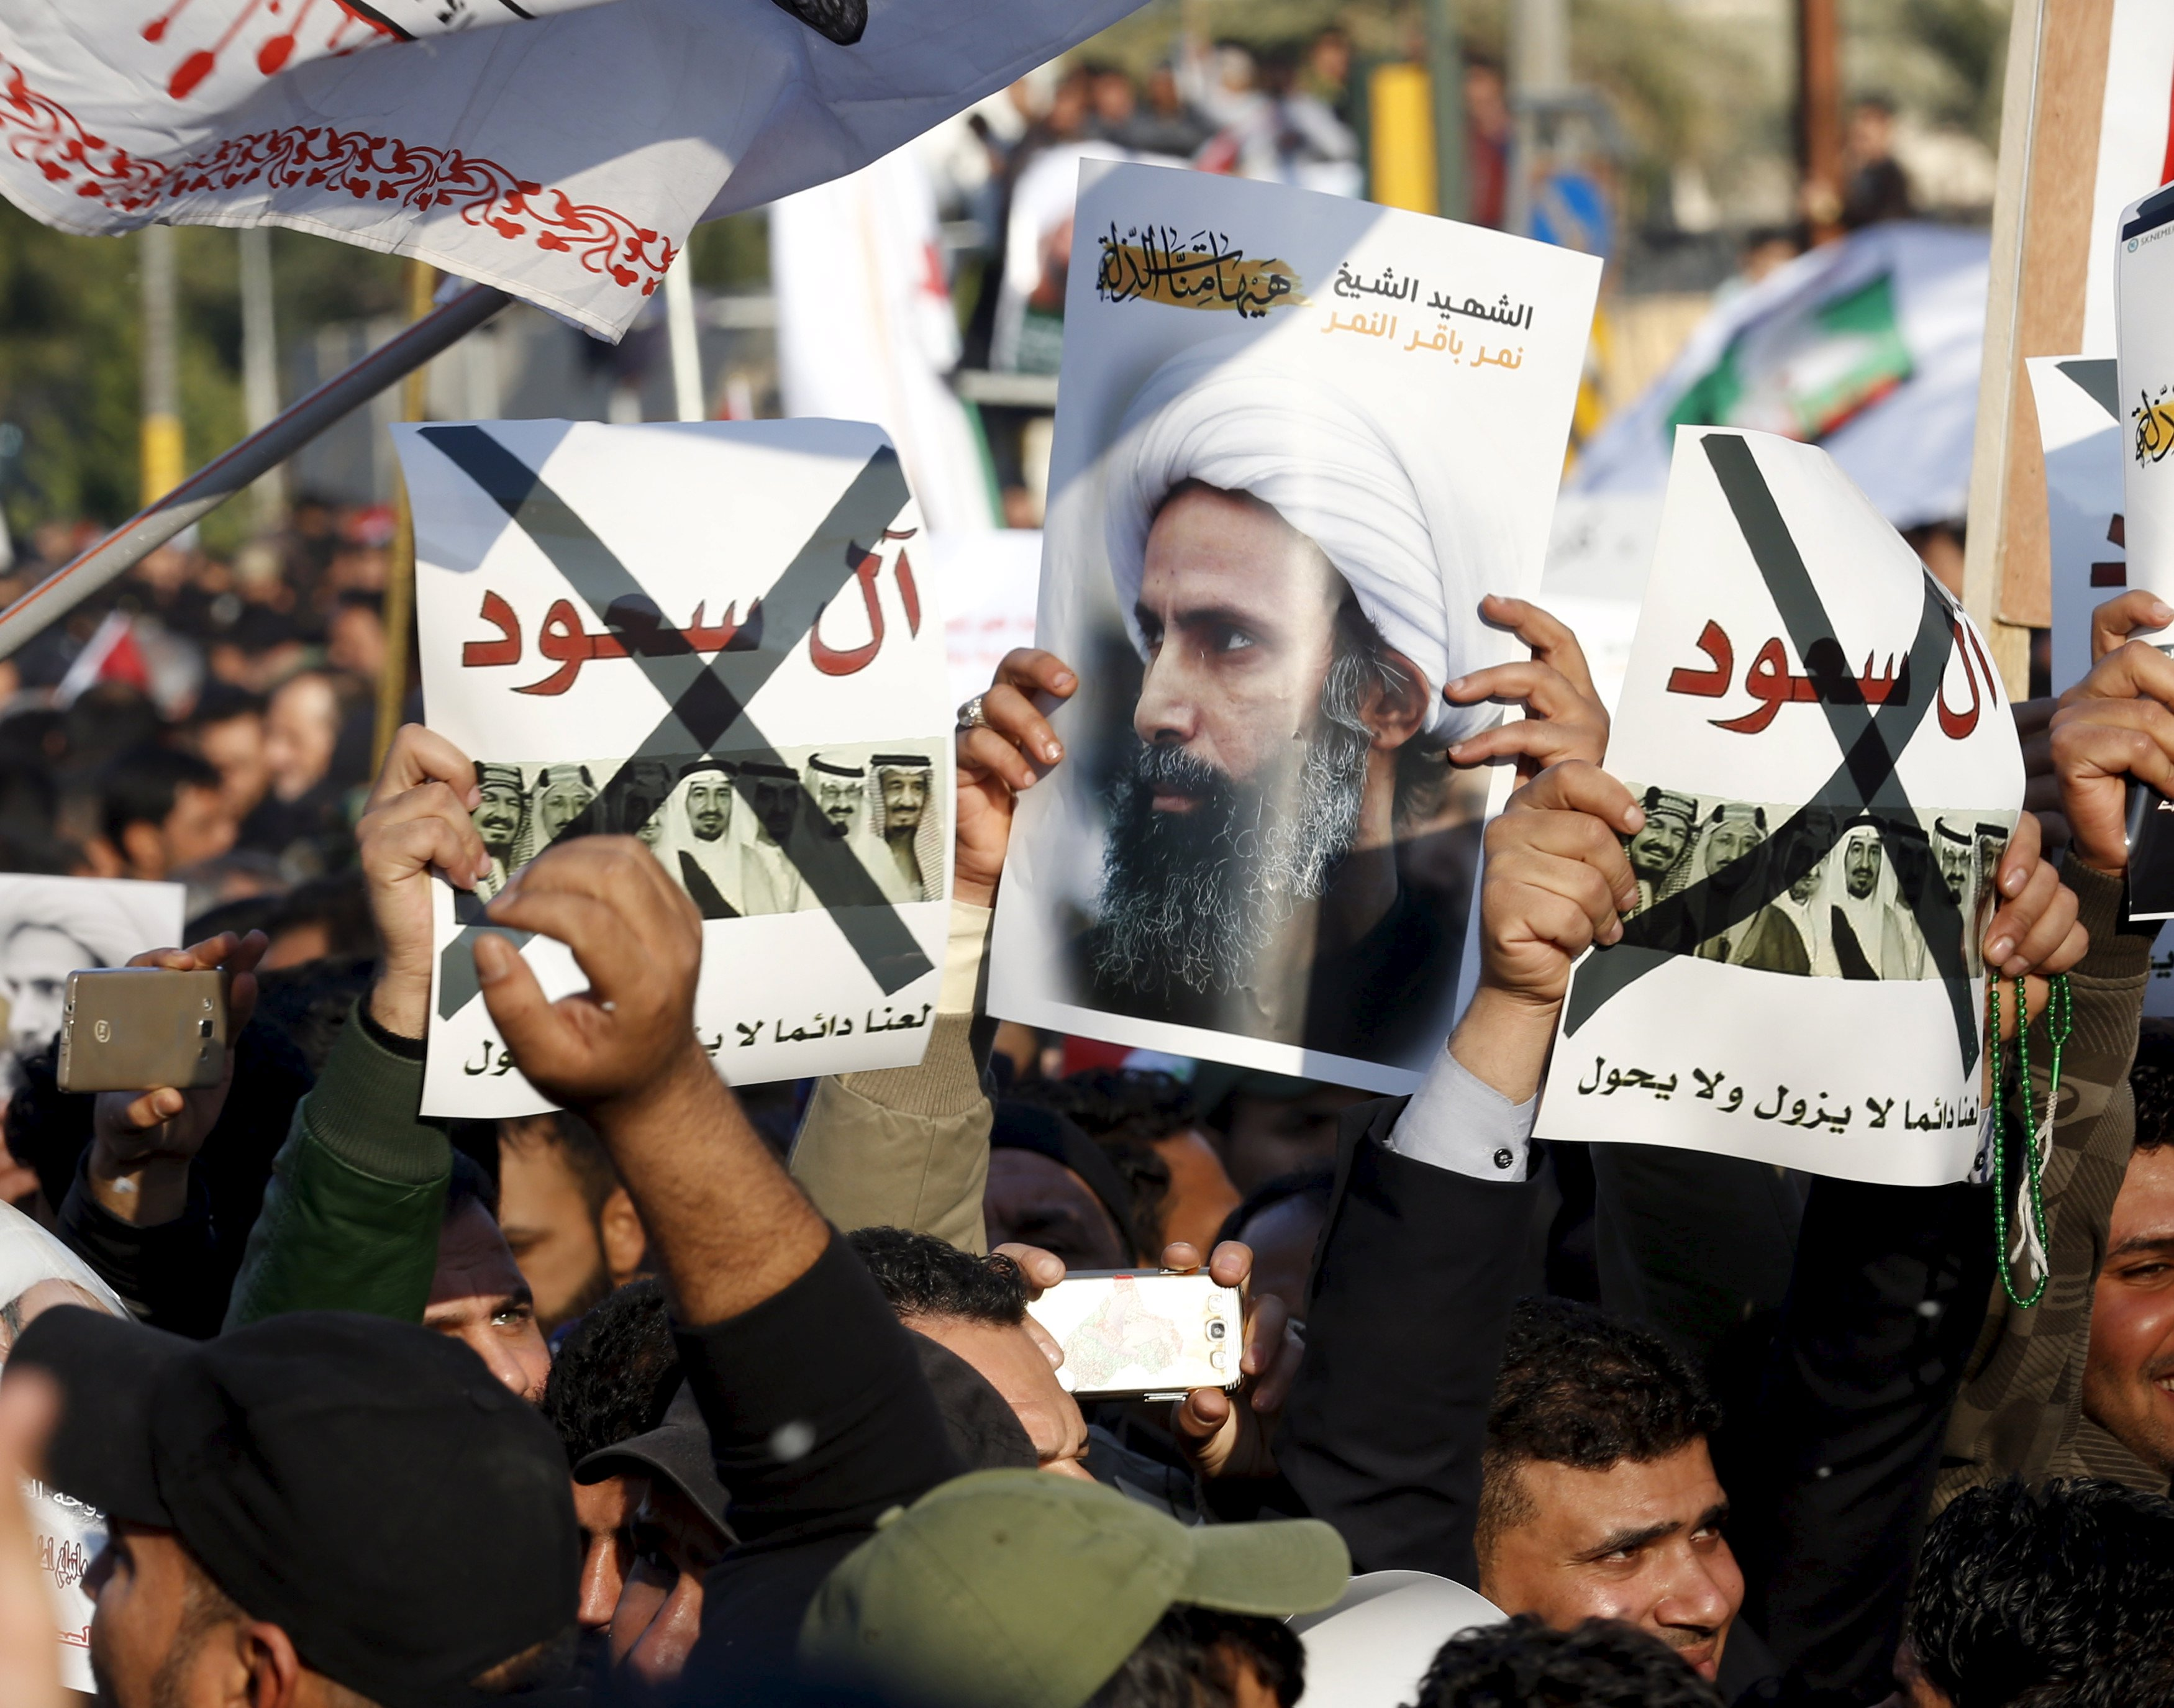 Supporters of Shi'ite cleric Moqtada al-Sadr protest against the execution of Shi'ite Muslim cleric Nimr al-Nimr in Saudi Arabia, during a demonstration in Baghdad January 4, 2016. Photo: Reuters